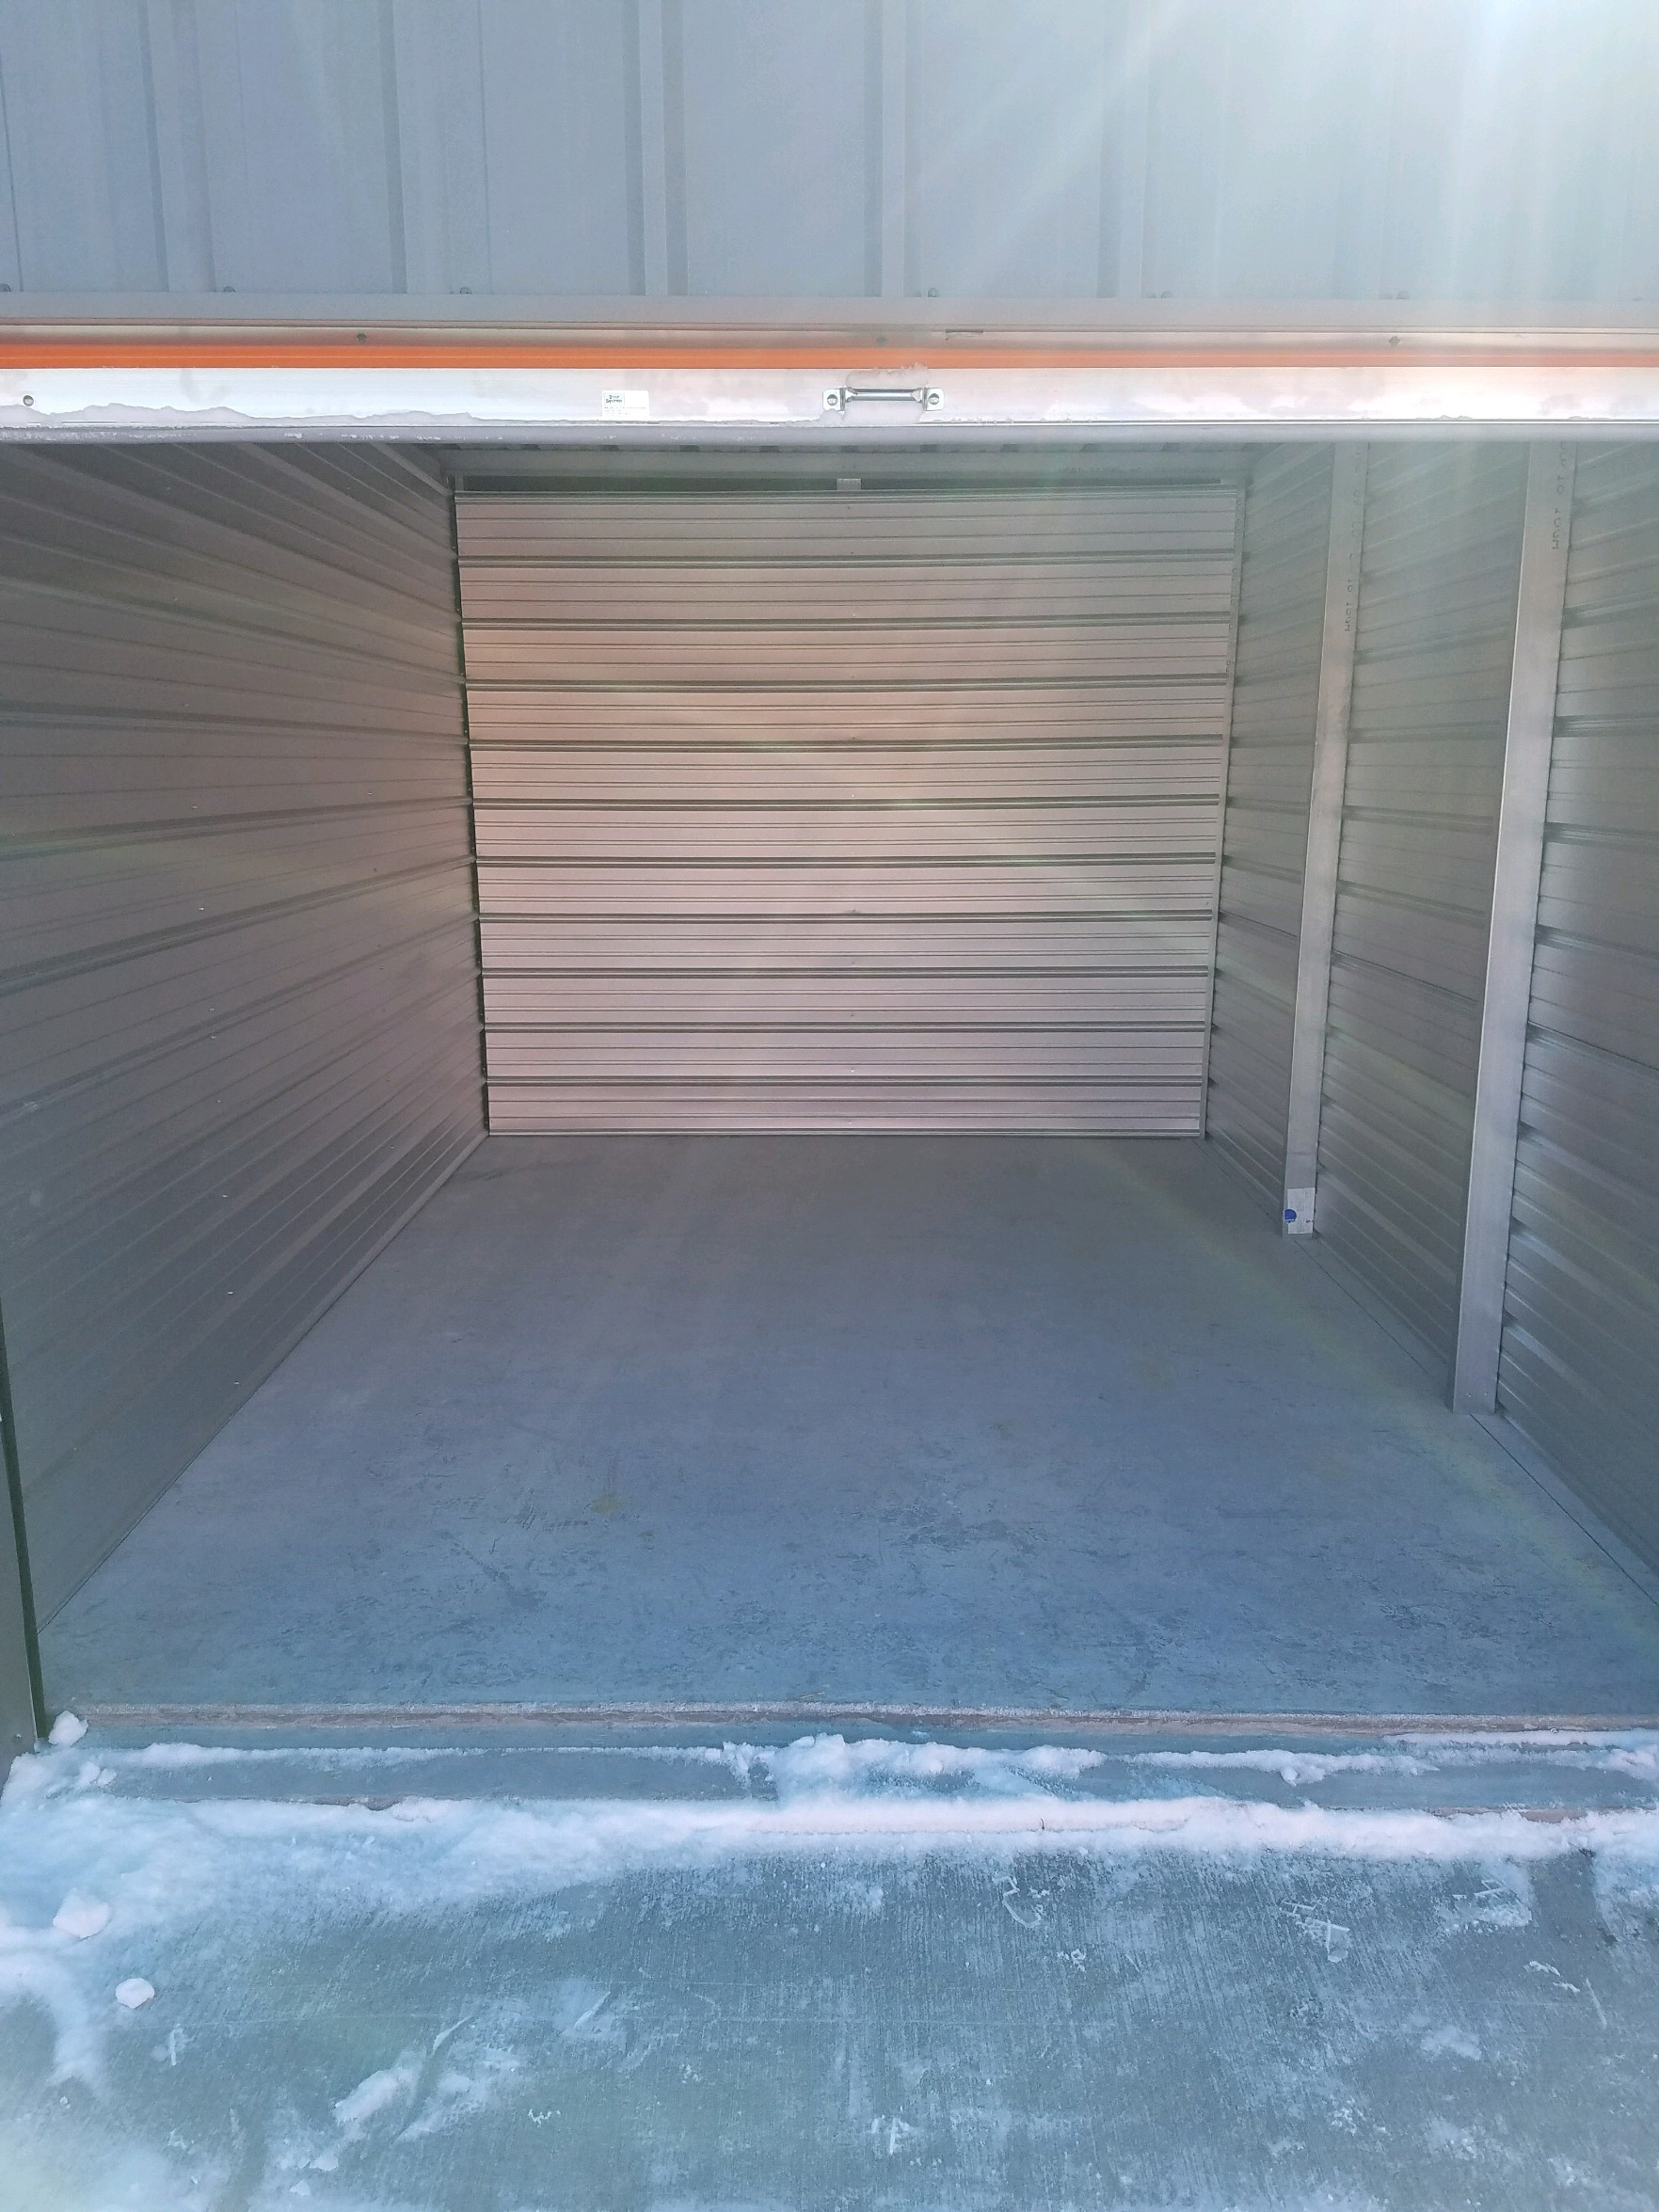 10' x 15' Self Storage Unit in Solon, Iowa at V' s Self Storage